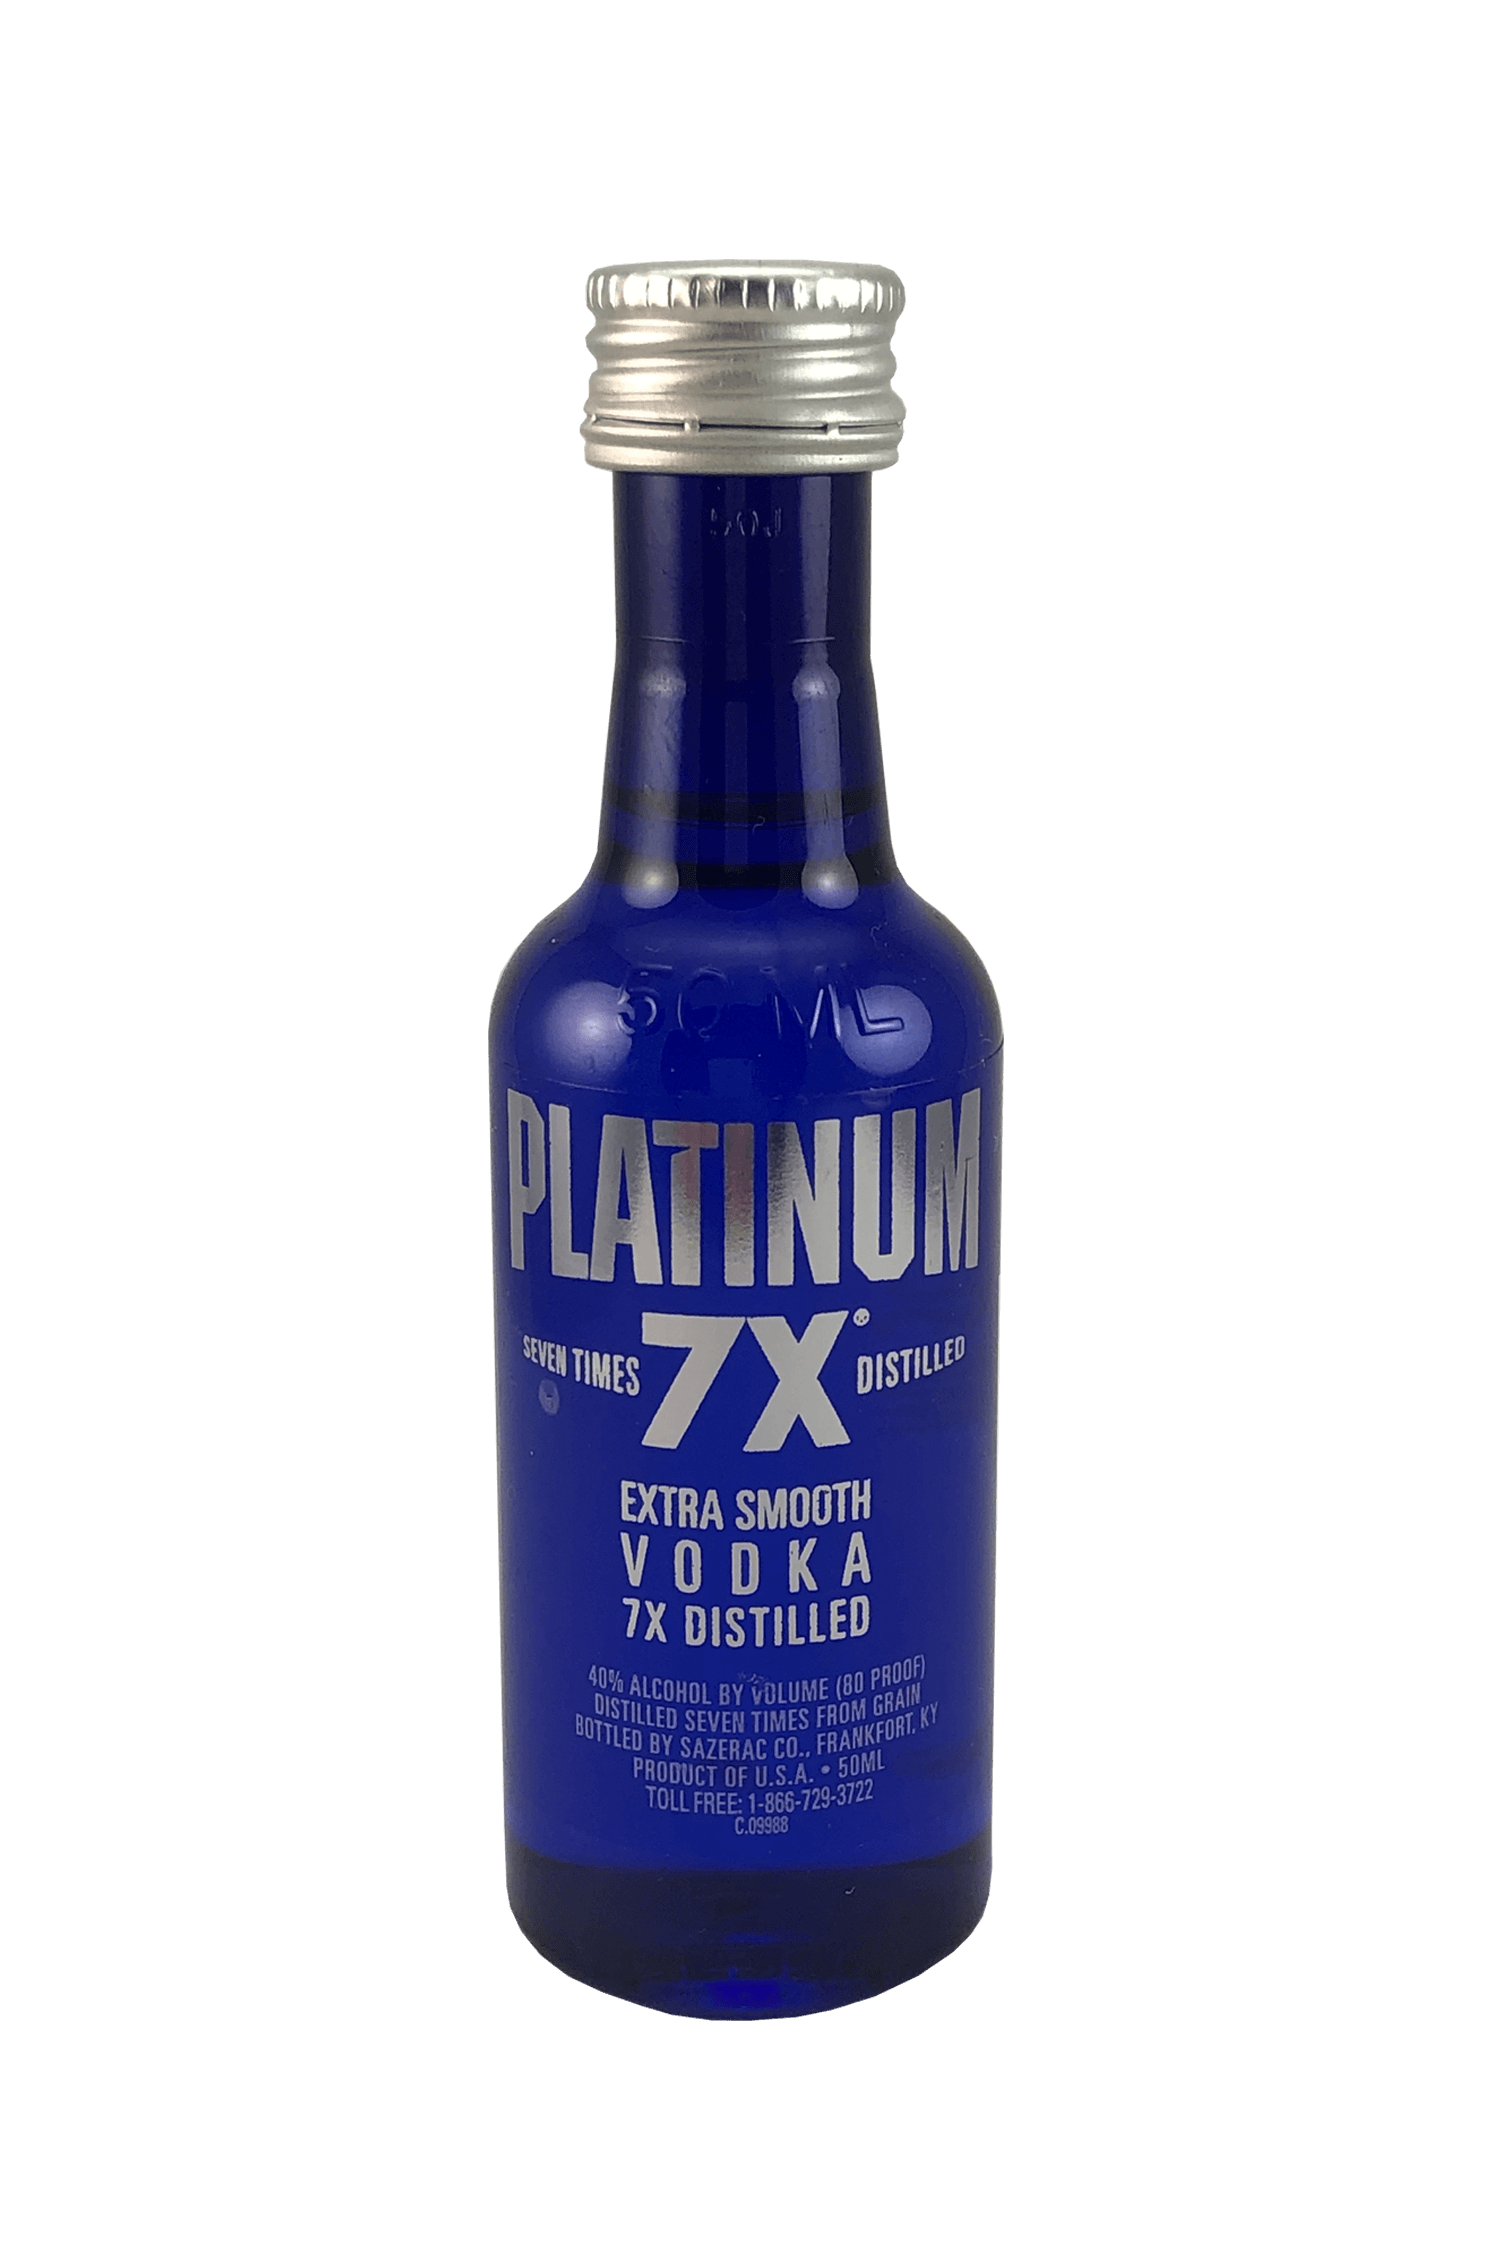 PLATINUM 7X EXTRA SMOOTH VODKA